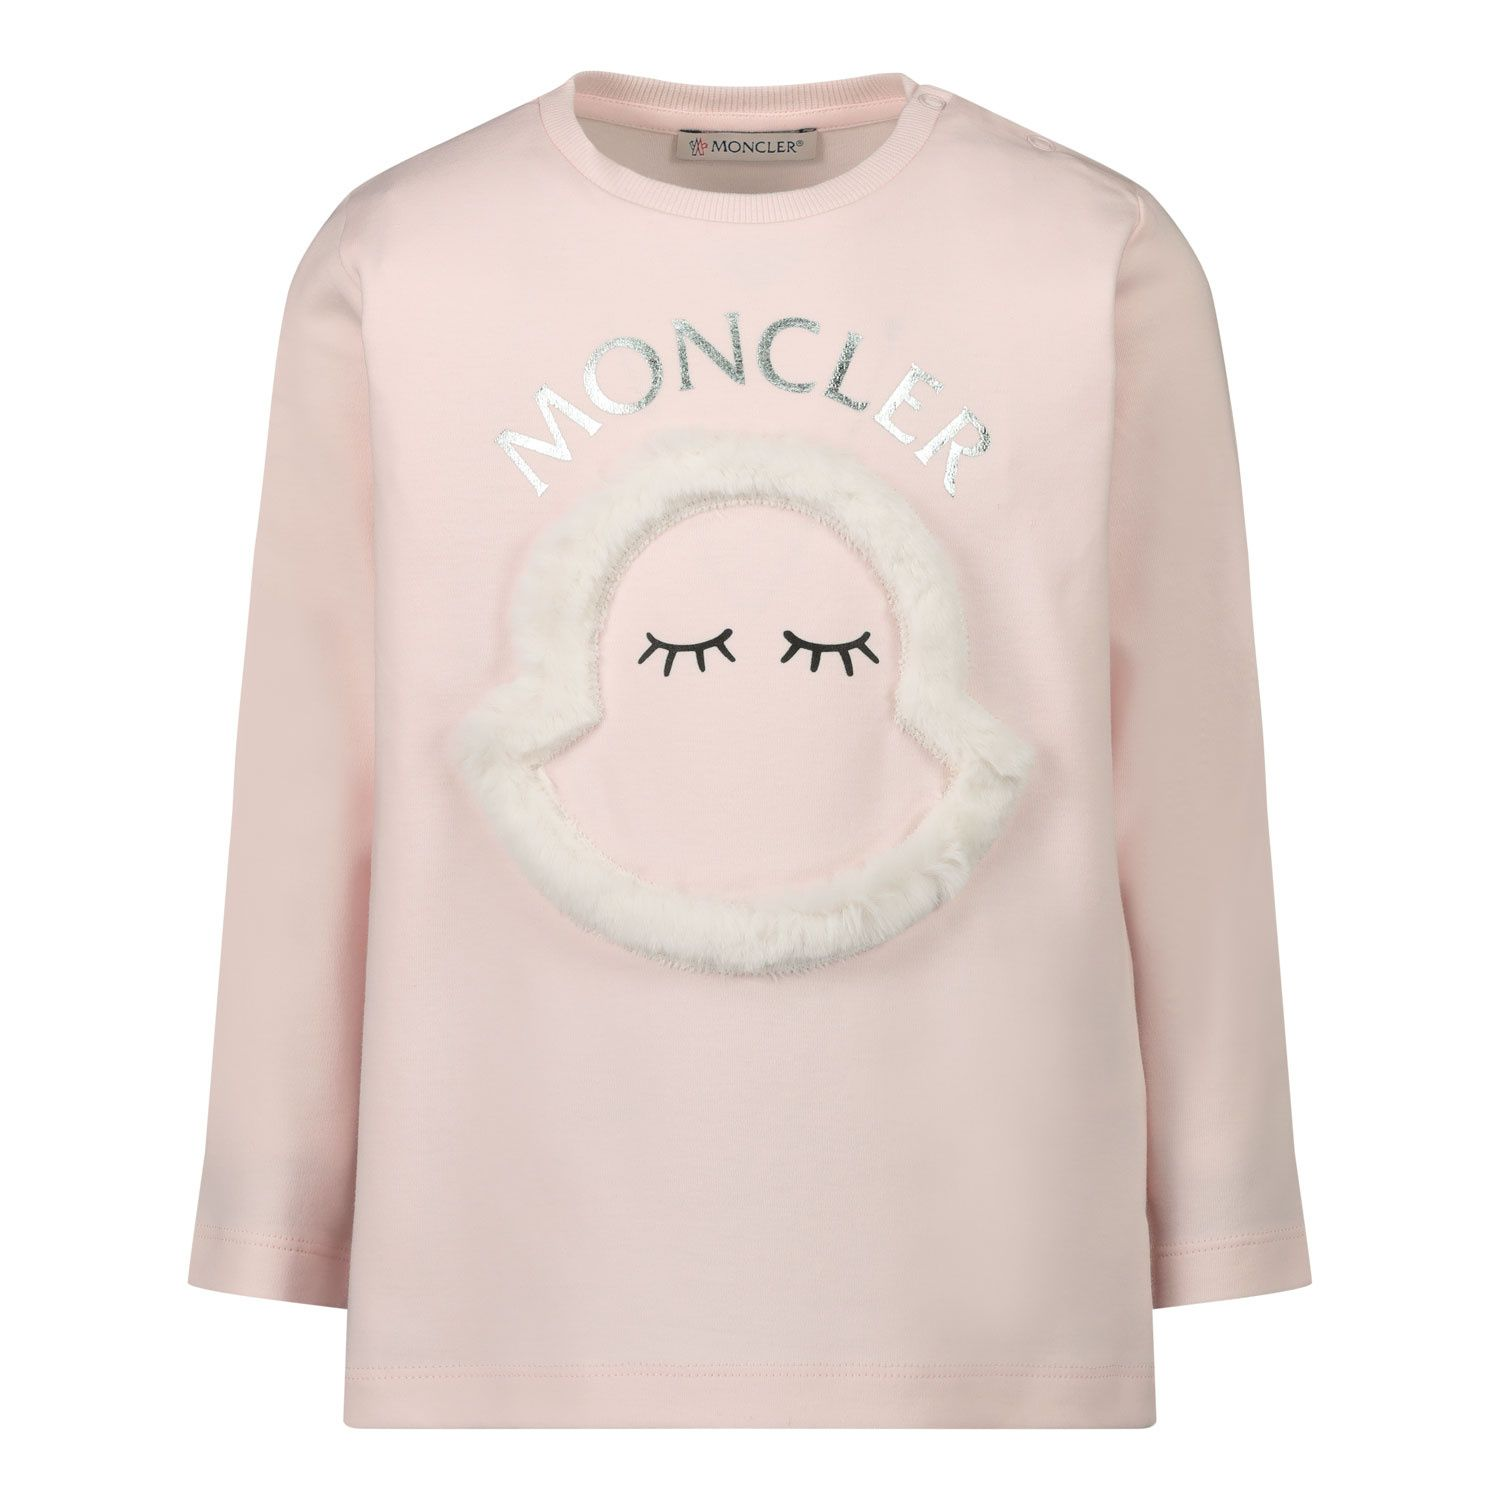 Picture of Moncler 8D71210 baby shirt light pink